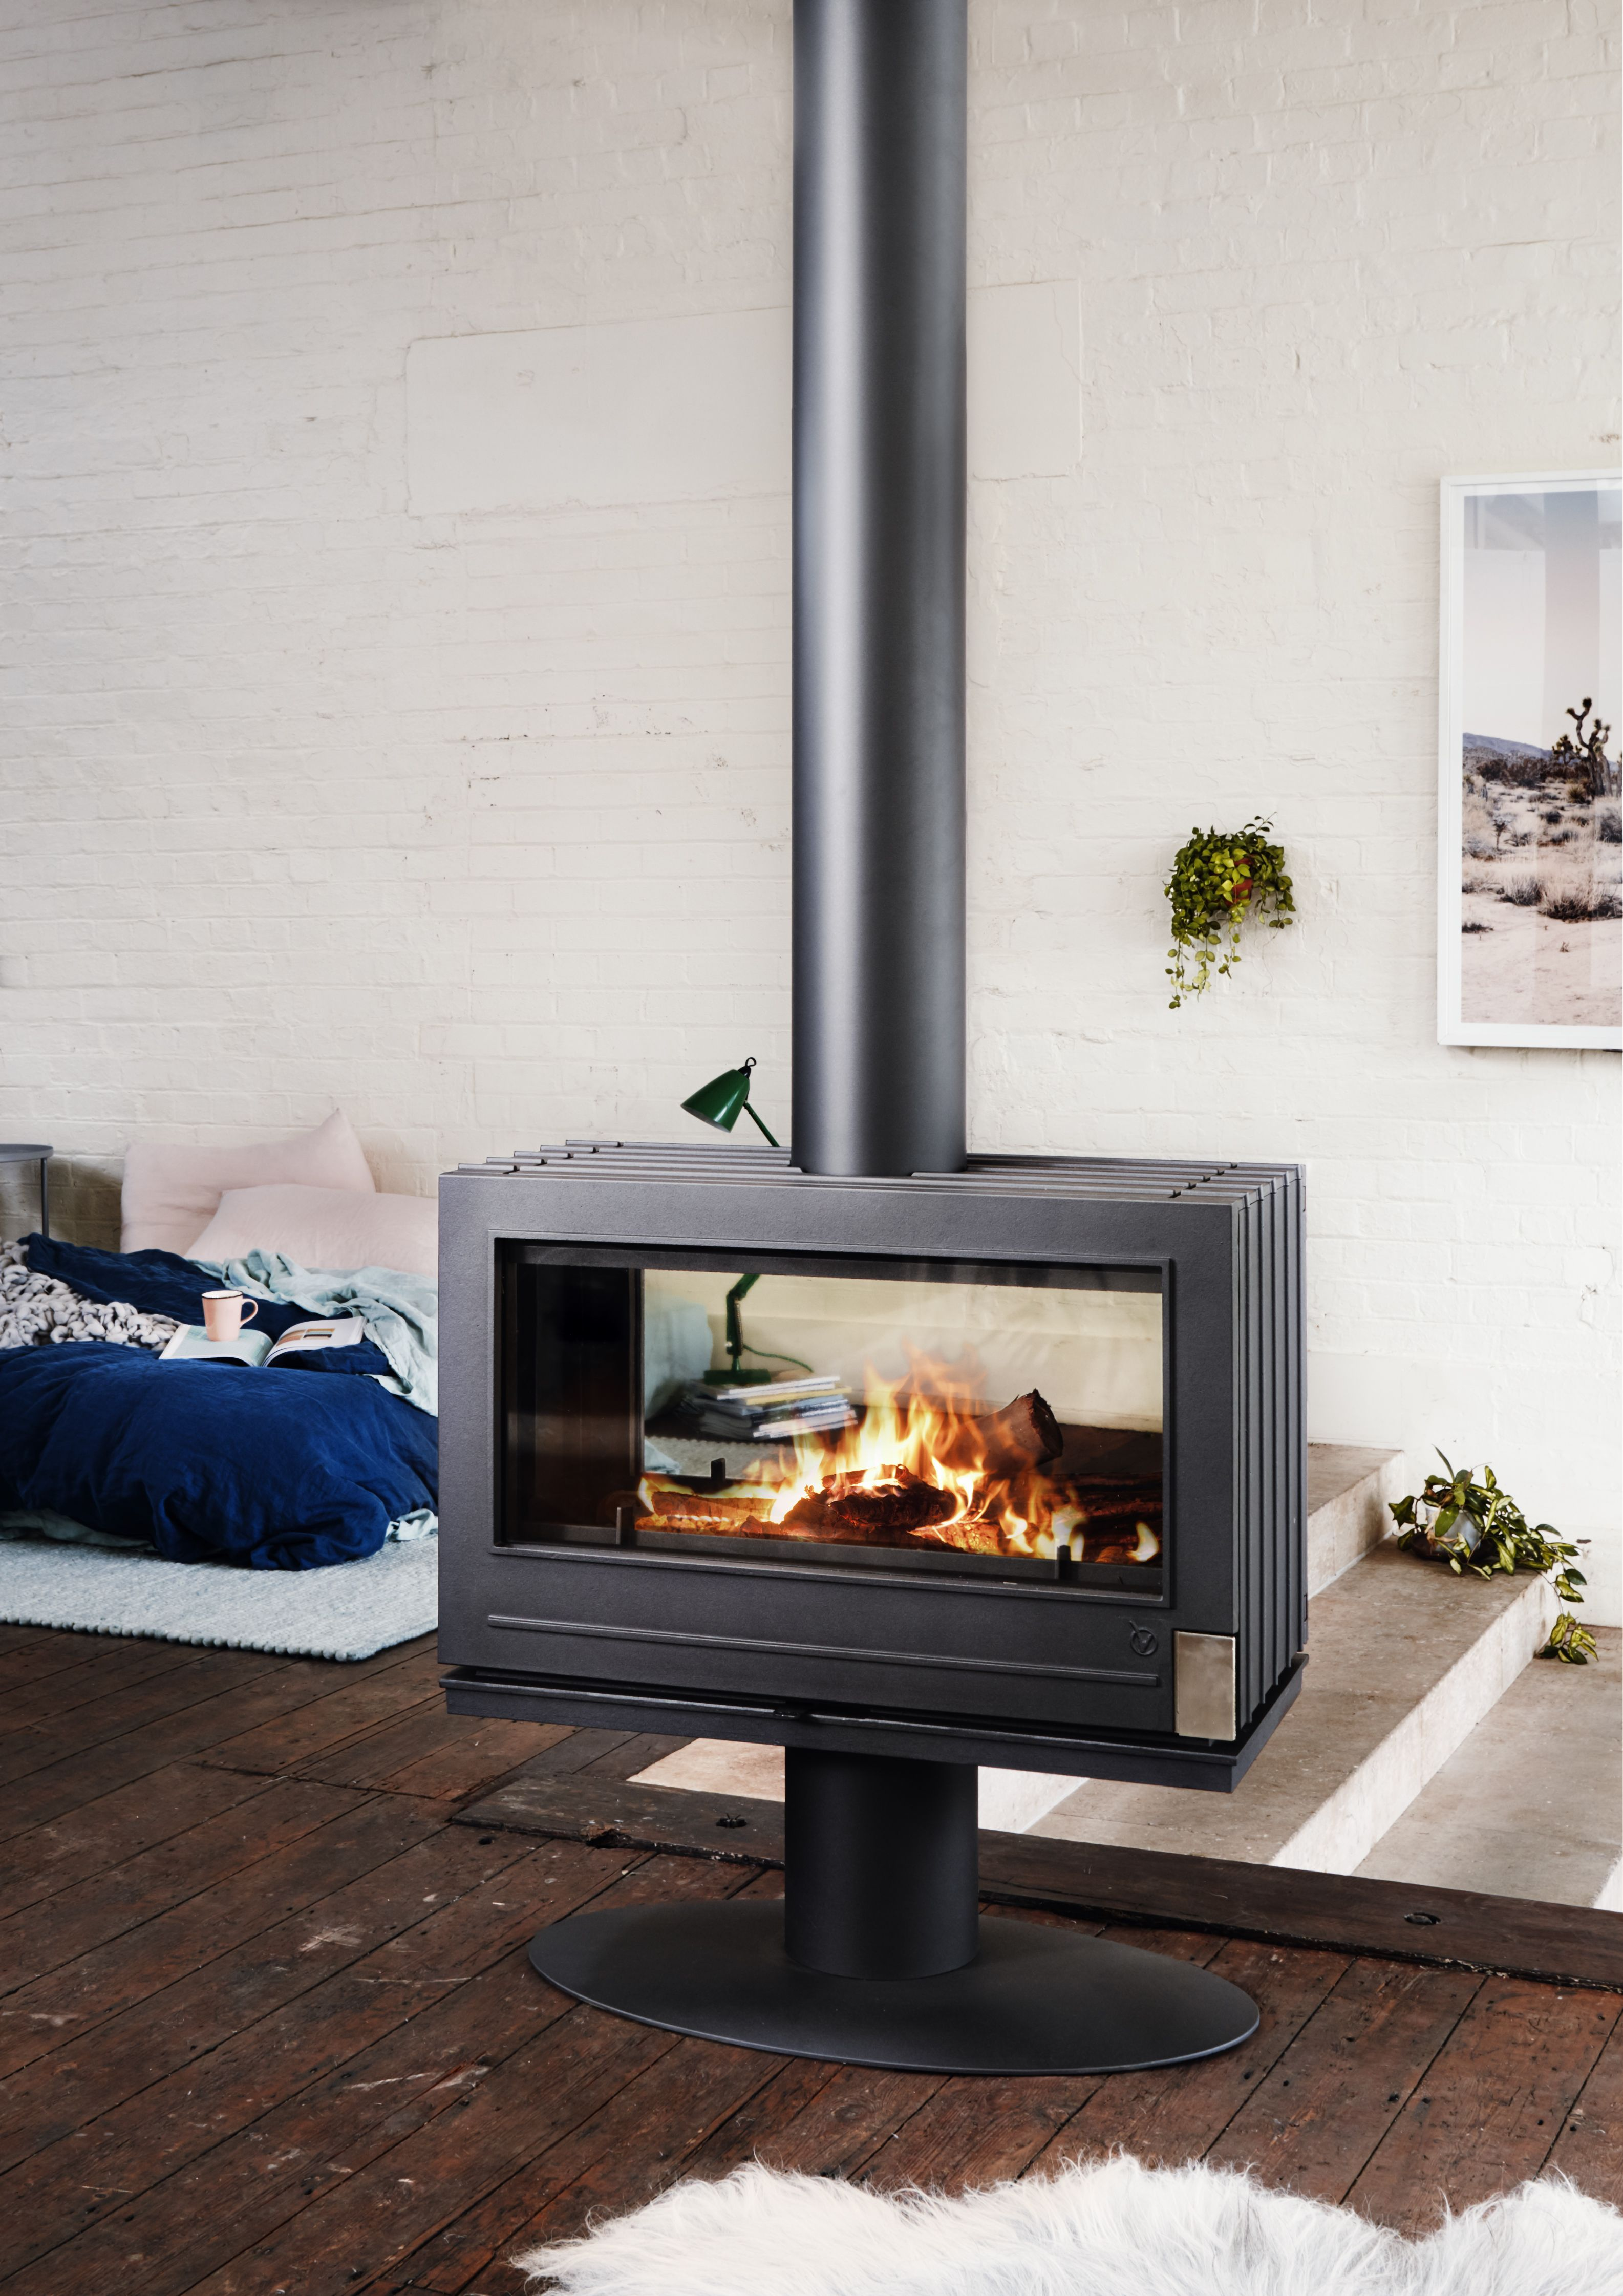 Immissionsschutz Offener Kamin Nelson Double Sided Fireplace By Invicta Invicta Fireplaces In